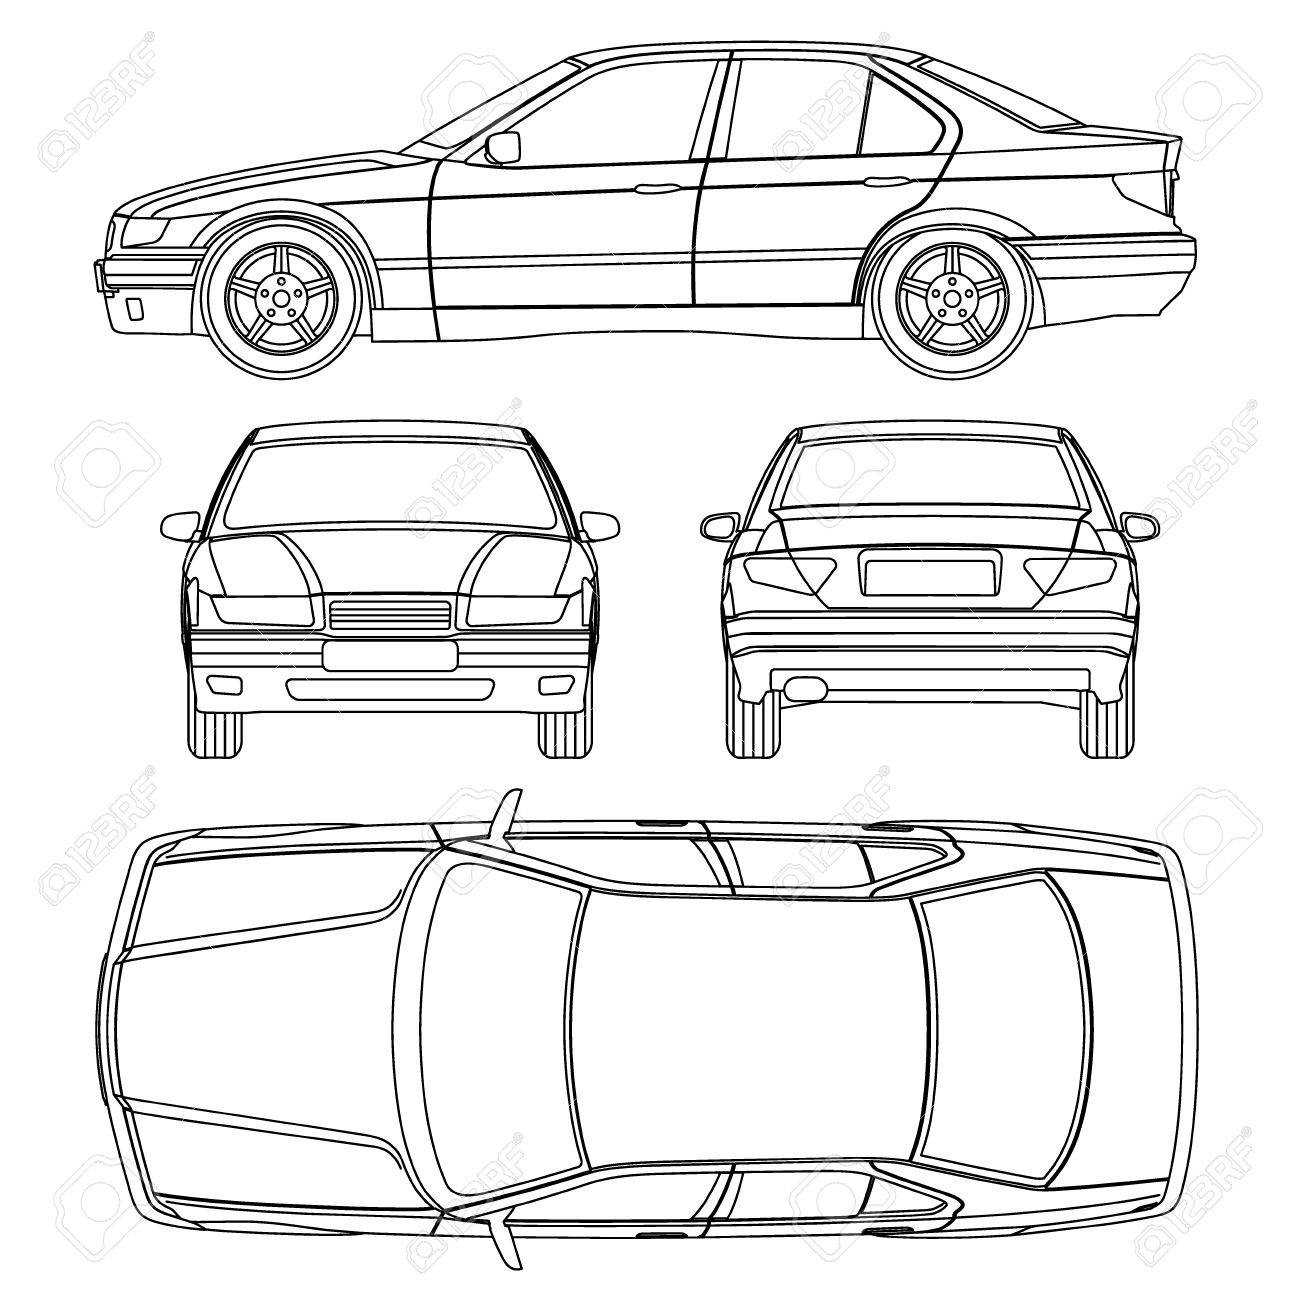 Car Line Draw Insurance Damage, Condition Report Form for Car Damage Report Template